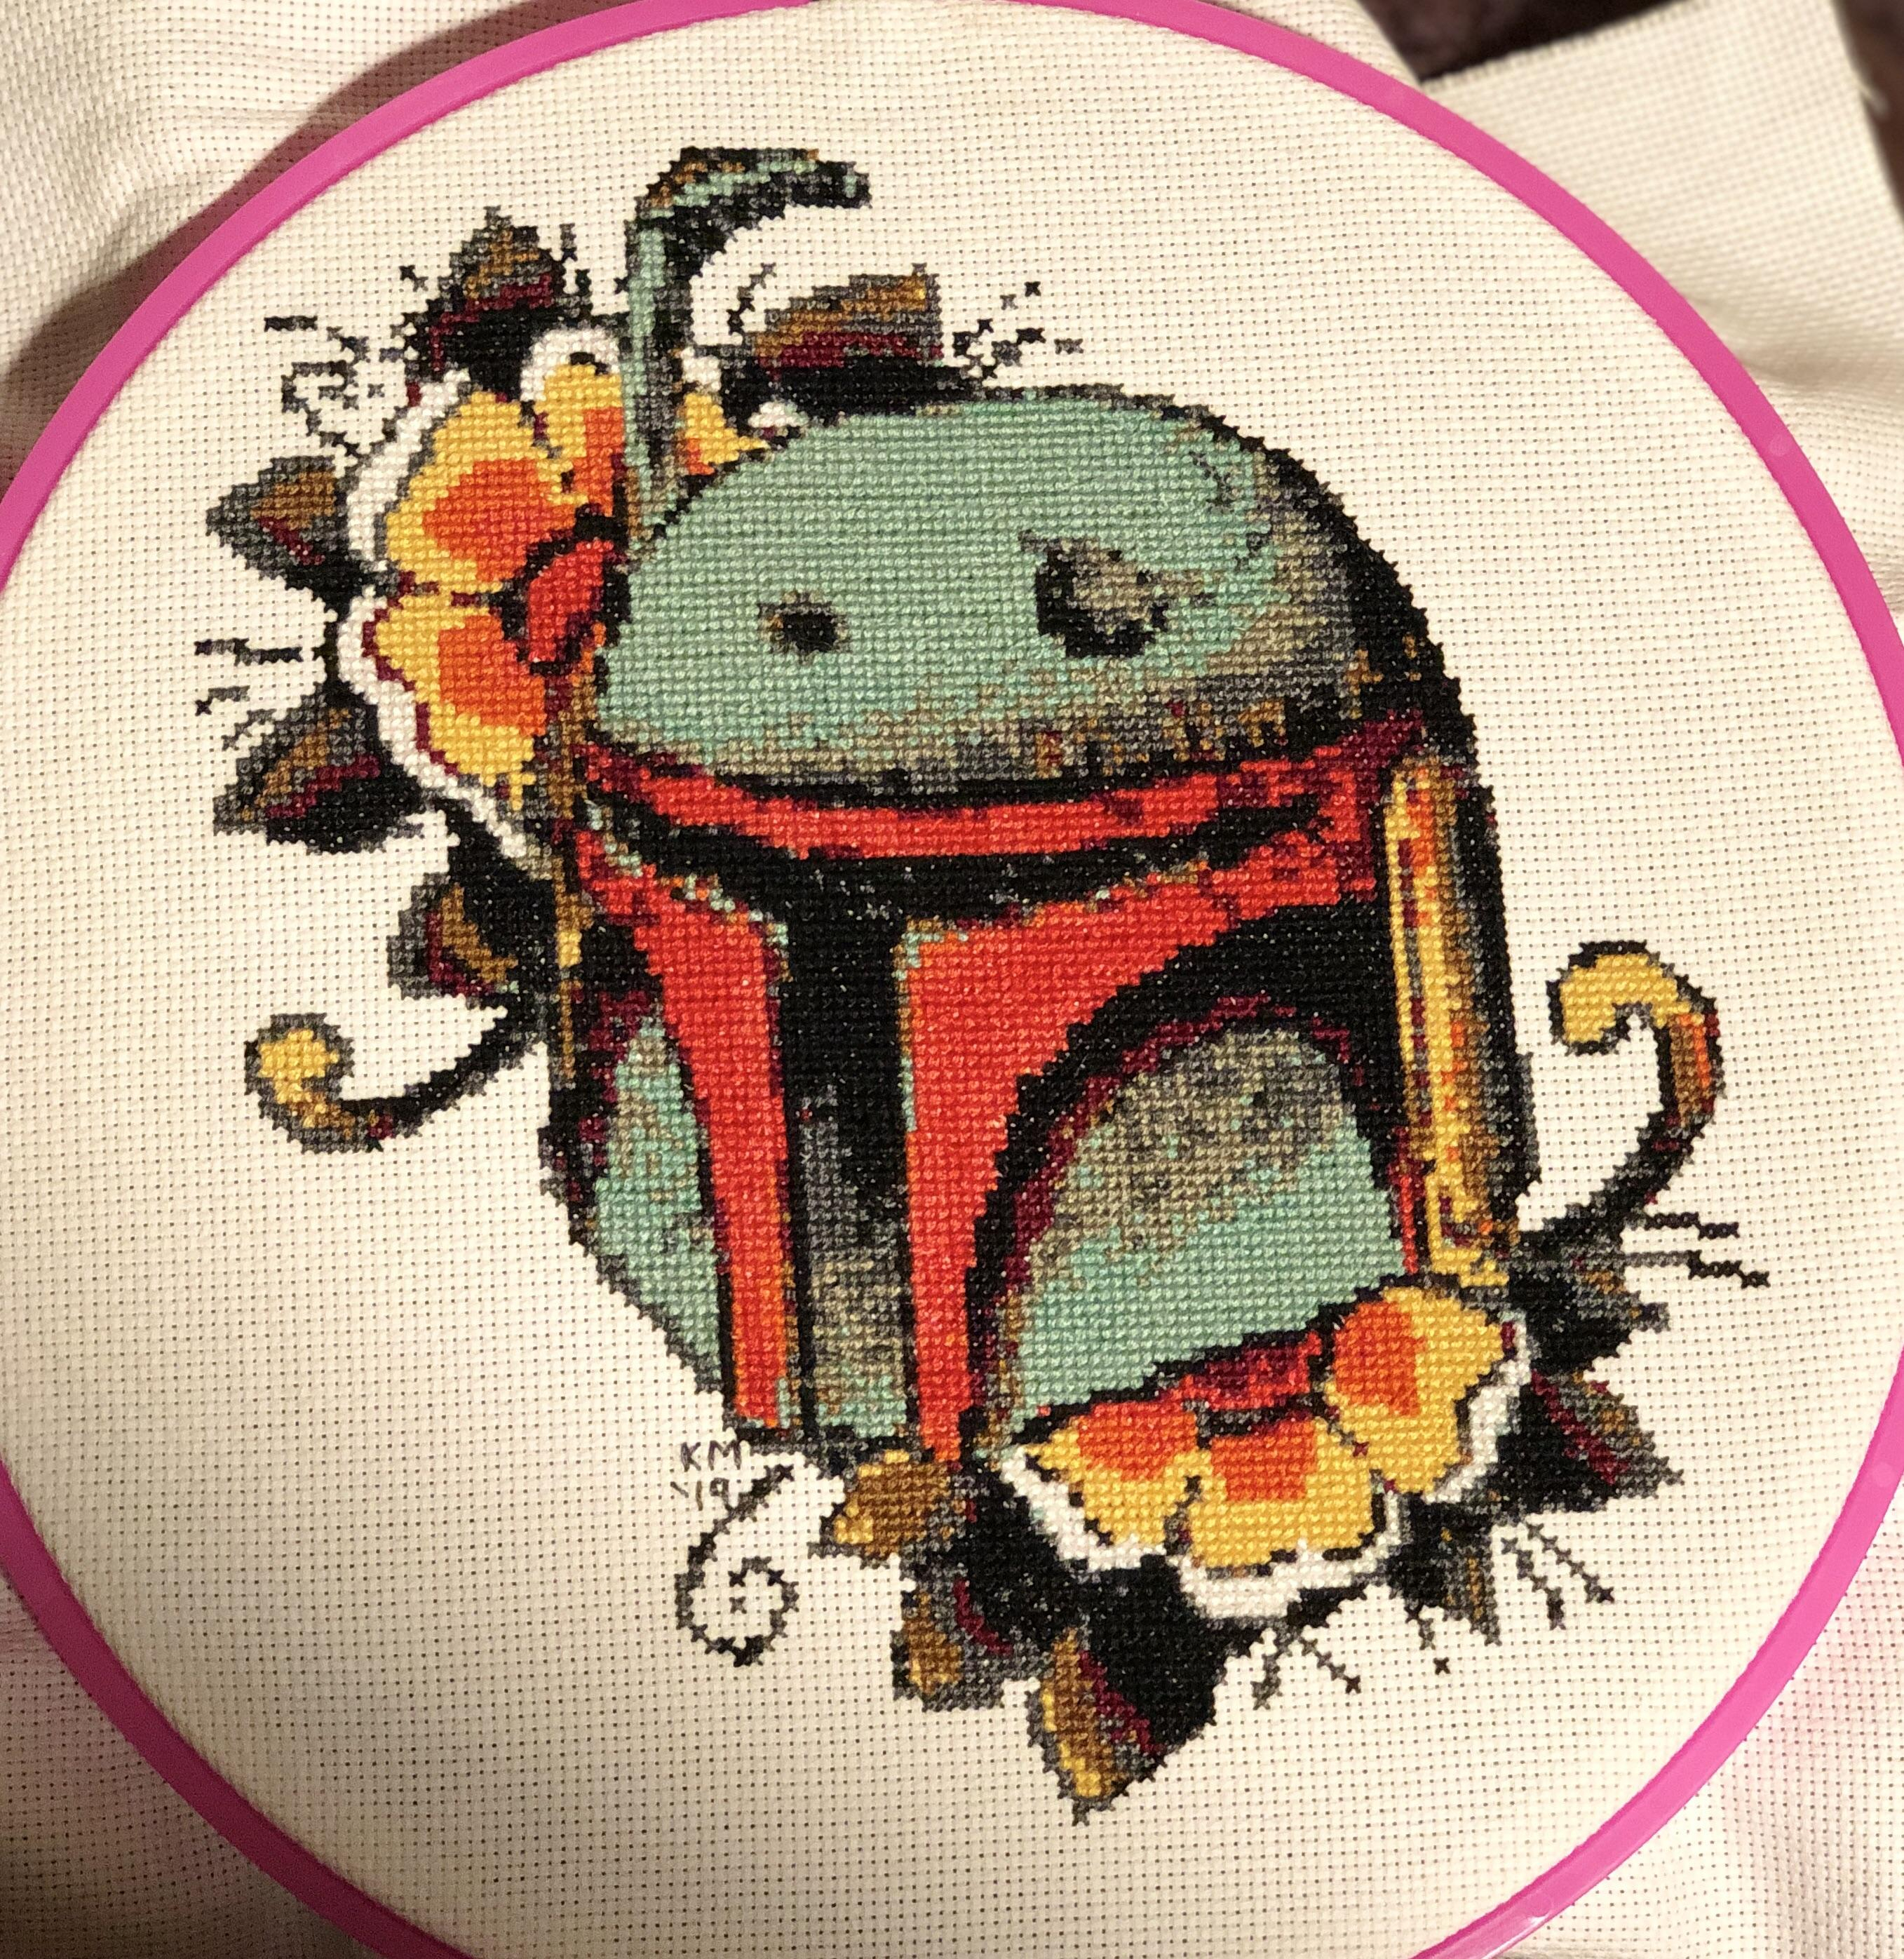 Star Wars Embroidery Pattern Fo Boba Fetts Helmet From Star Wars I Loved The Retro 70s